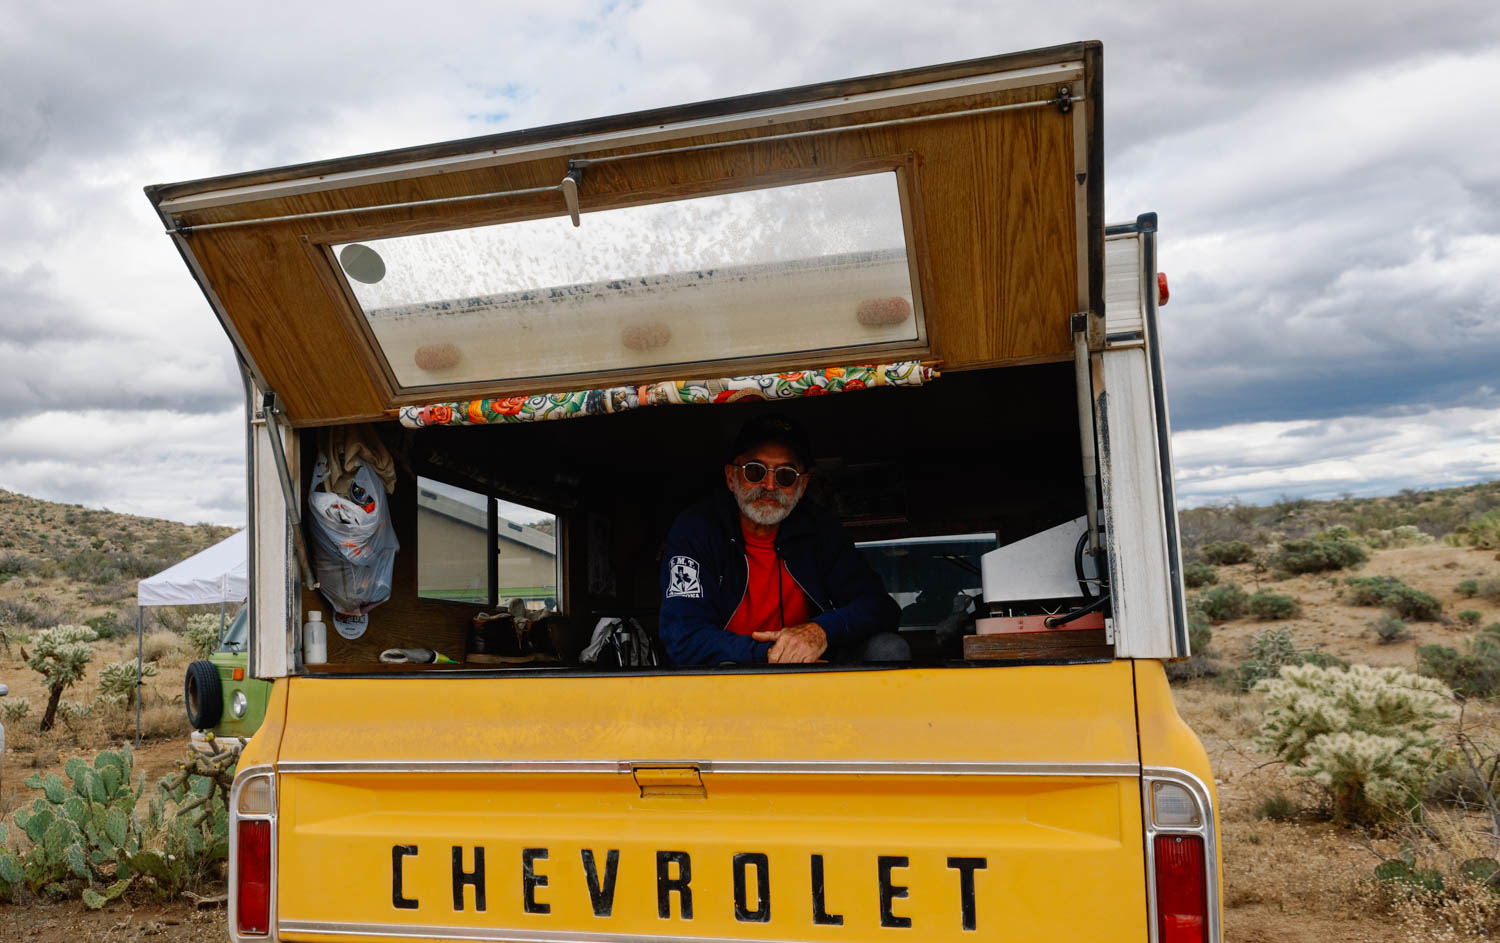 This is E.T. It's his 14th year of doing the 24HOP in solo. He is a fascinating man. He bought that truck brand new in 1973 (he calls it the coyote den). He is a fire fighter and was sent to help during Hurricanes Katrina and Rita and the big fires of California over Christmas. He's worked in Tok, Alaska and lives in a remote rural area near the Mexican border. He speaks Portughese and Spanish and asks the most interesting questions.